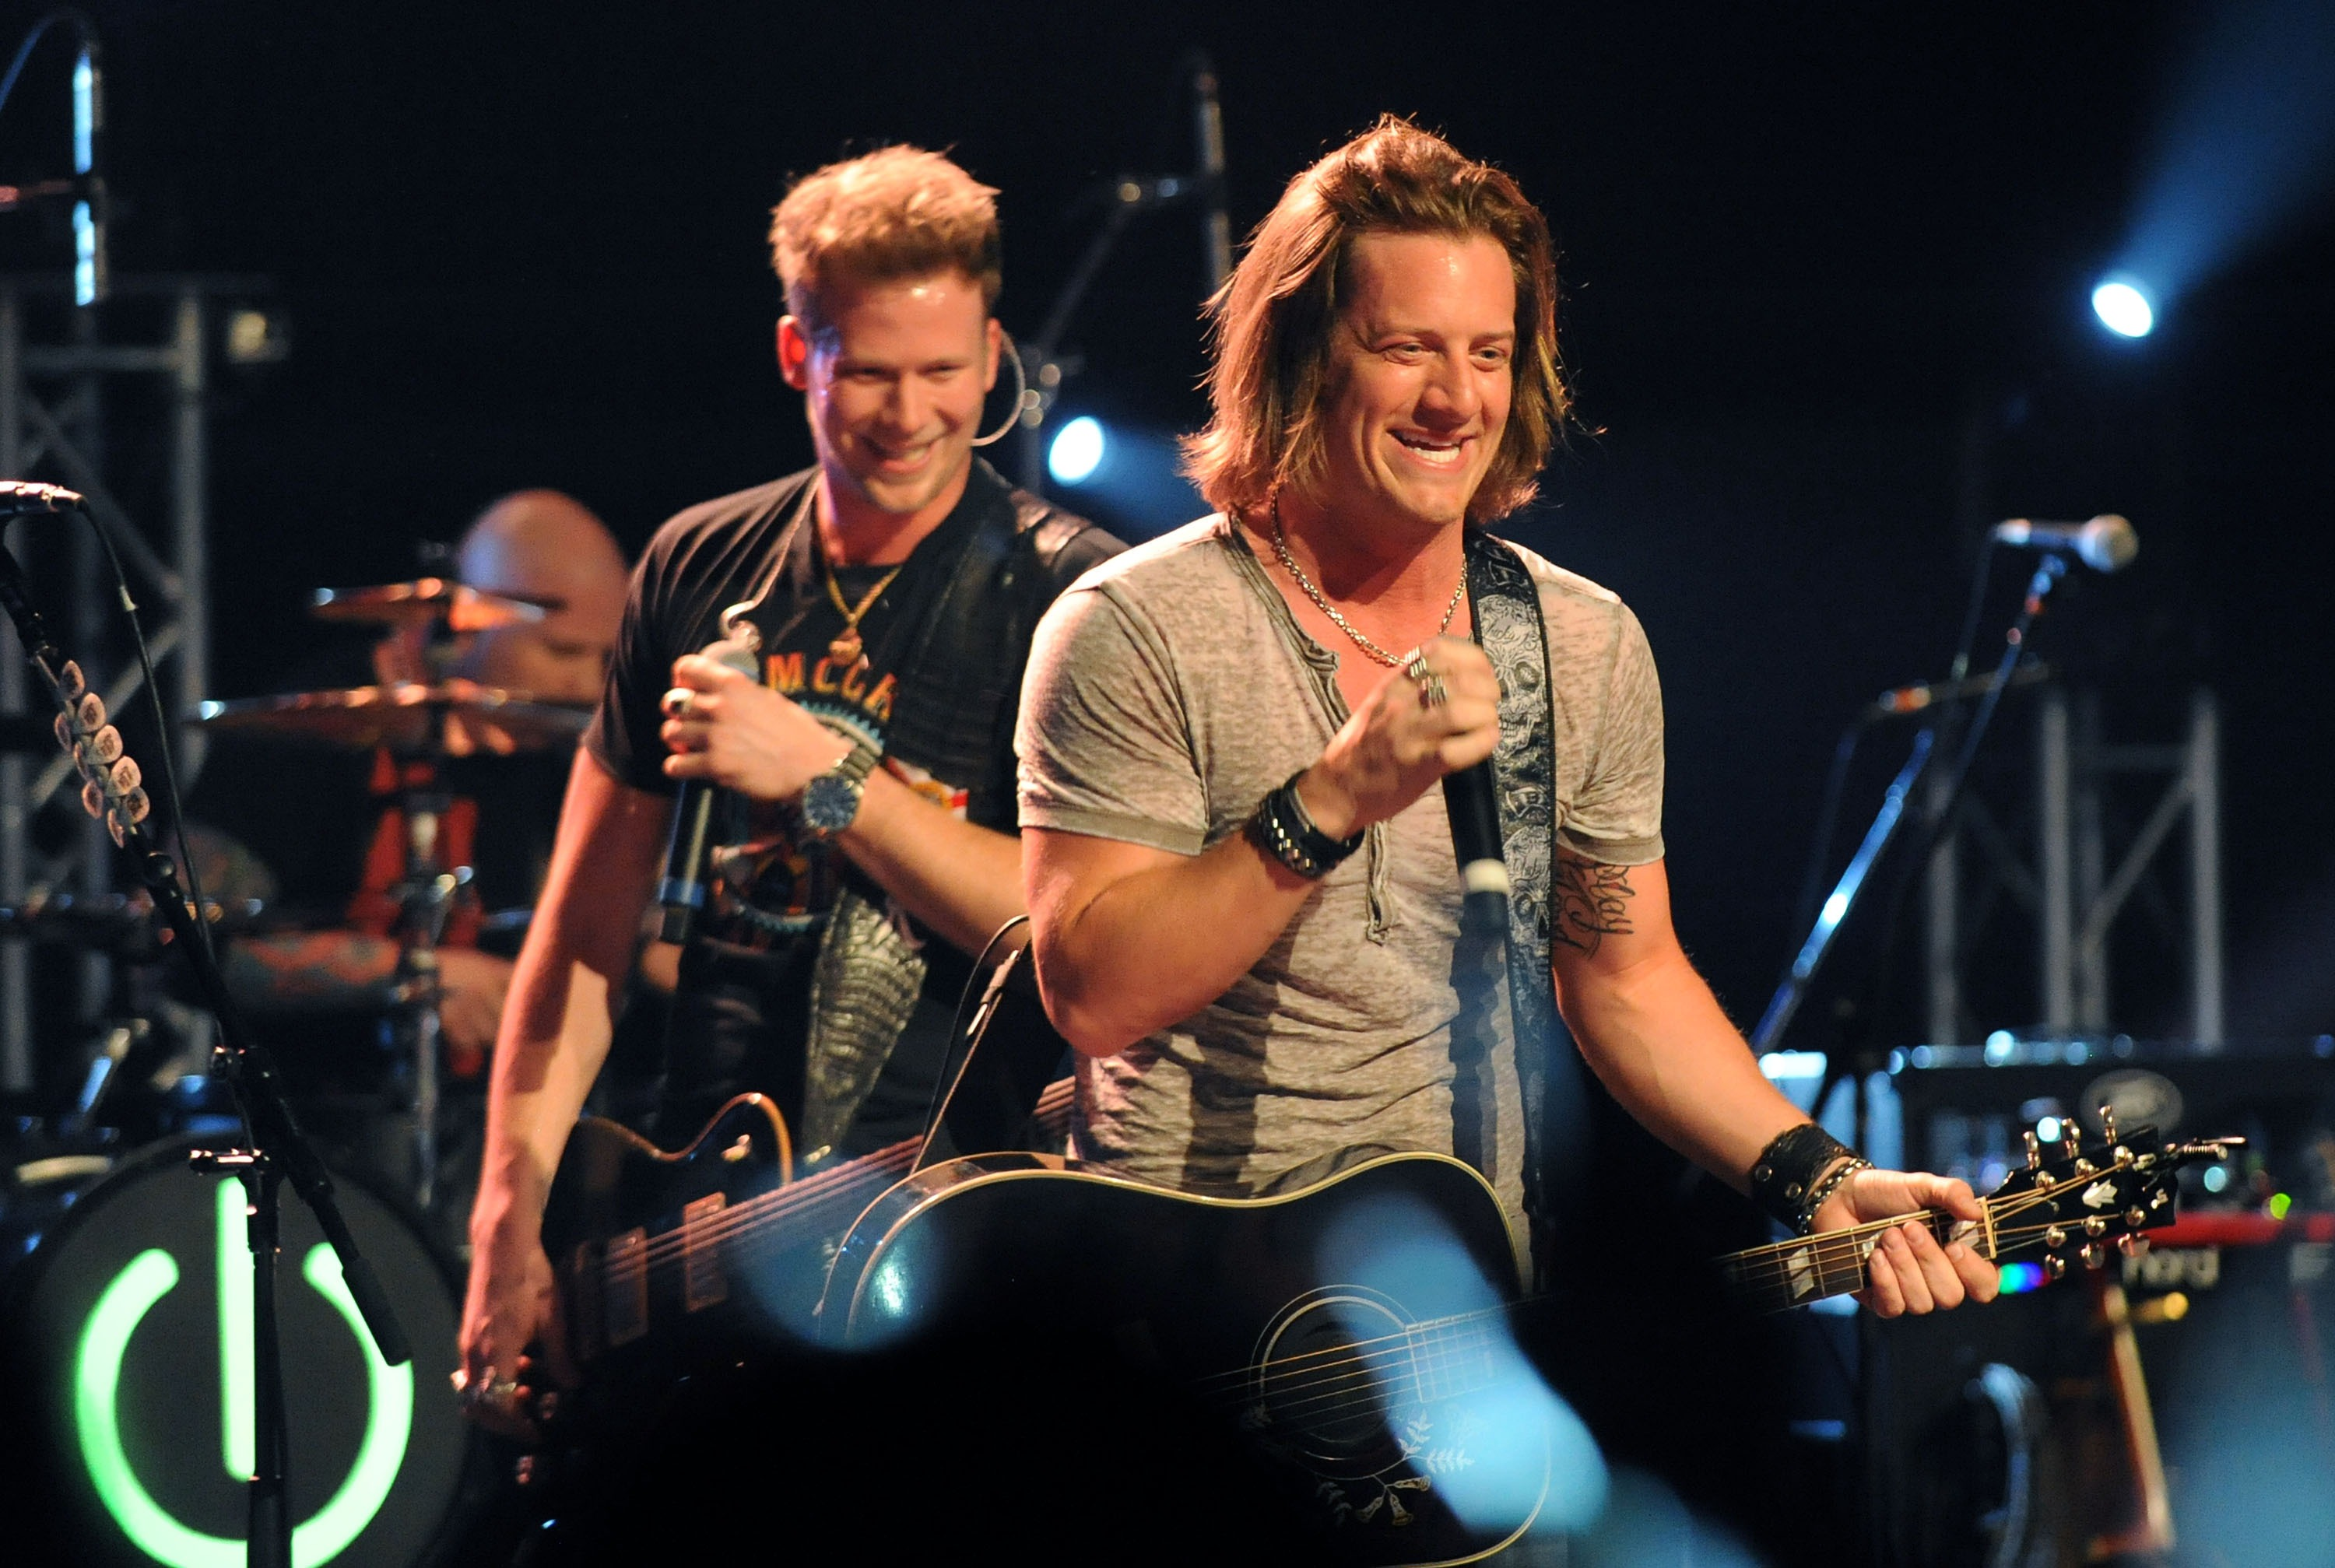 From left: Brian Kelley and Tyler Hubbard of Florida Georgia Line perform at the Georgia Theatre on March 20, 2013 in Athens, Ga.